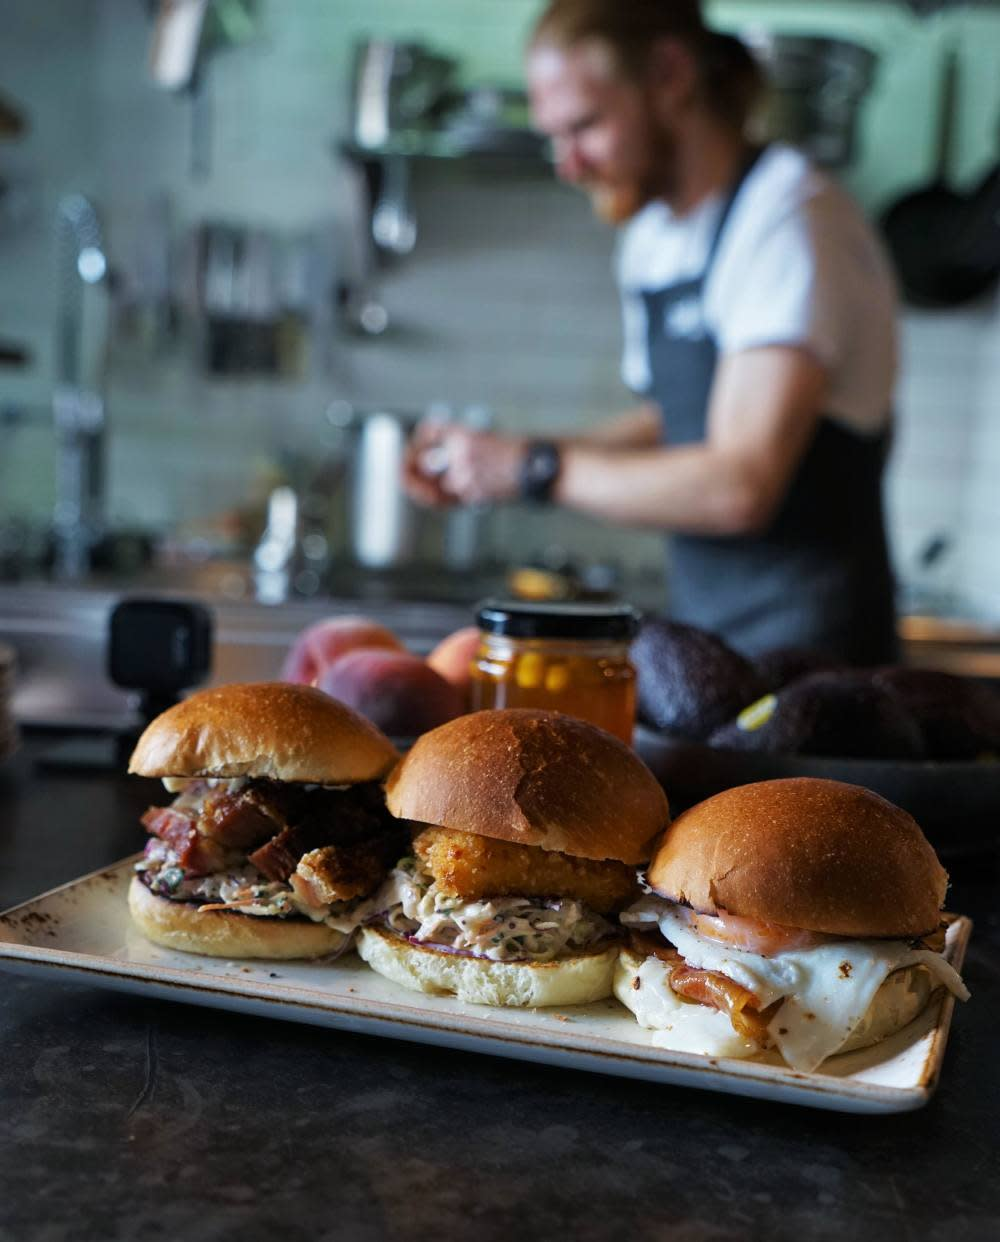 Sliders at Small-fry, Hobart